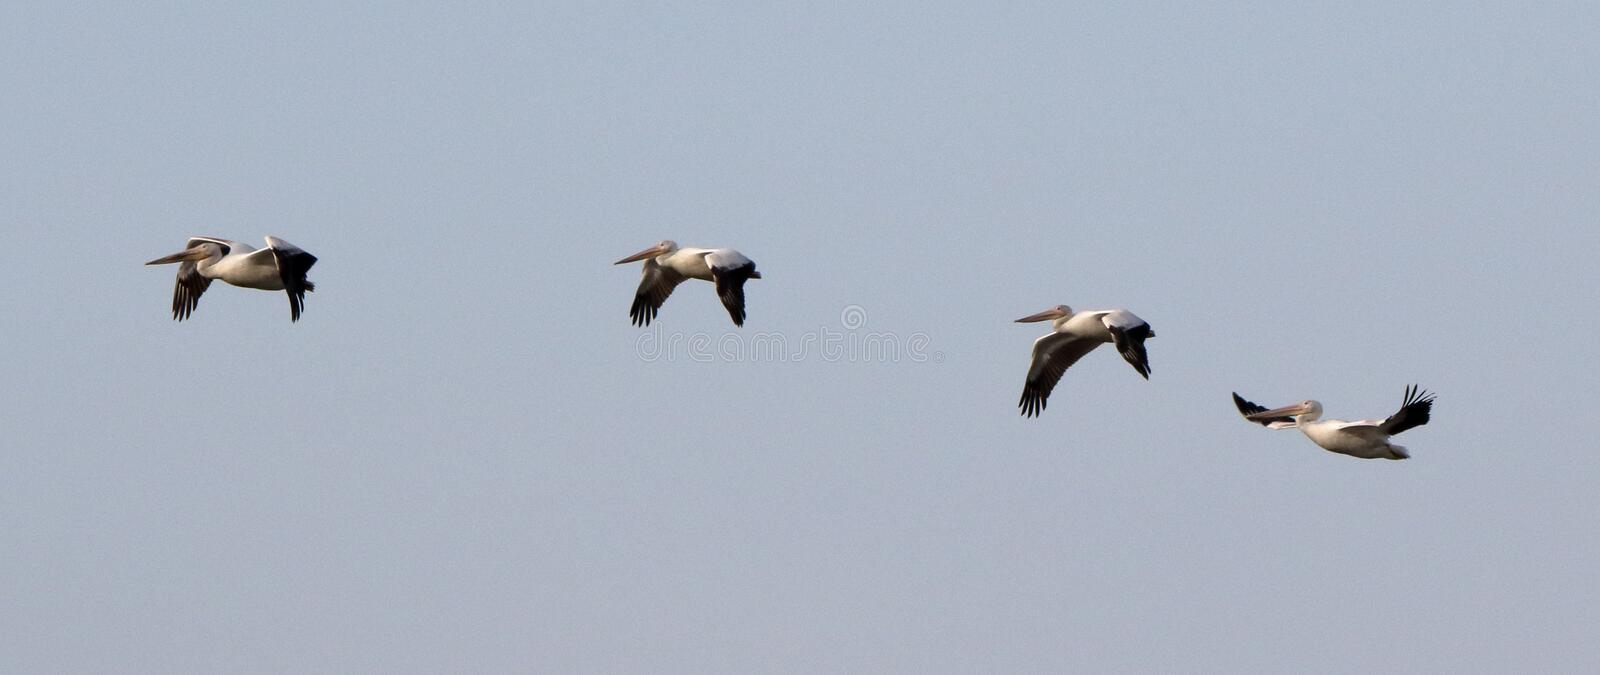 Four pelicans flying in formation stock image